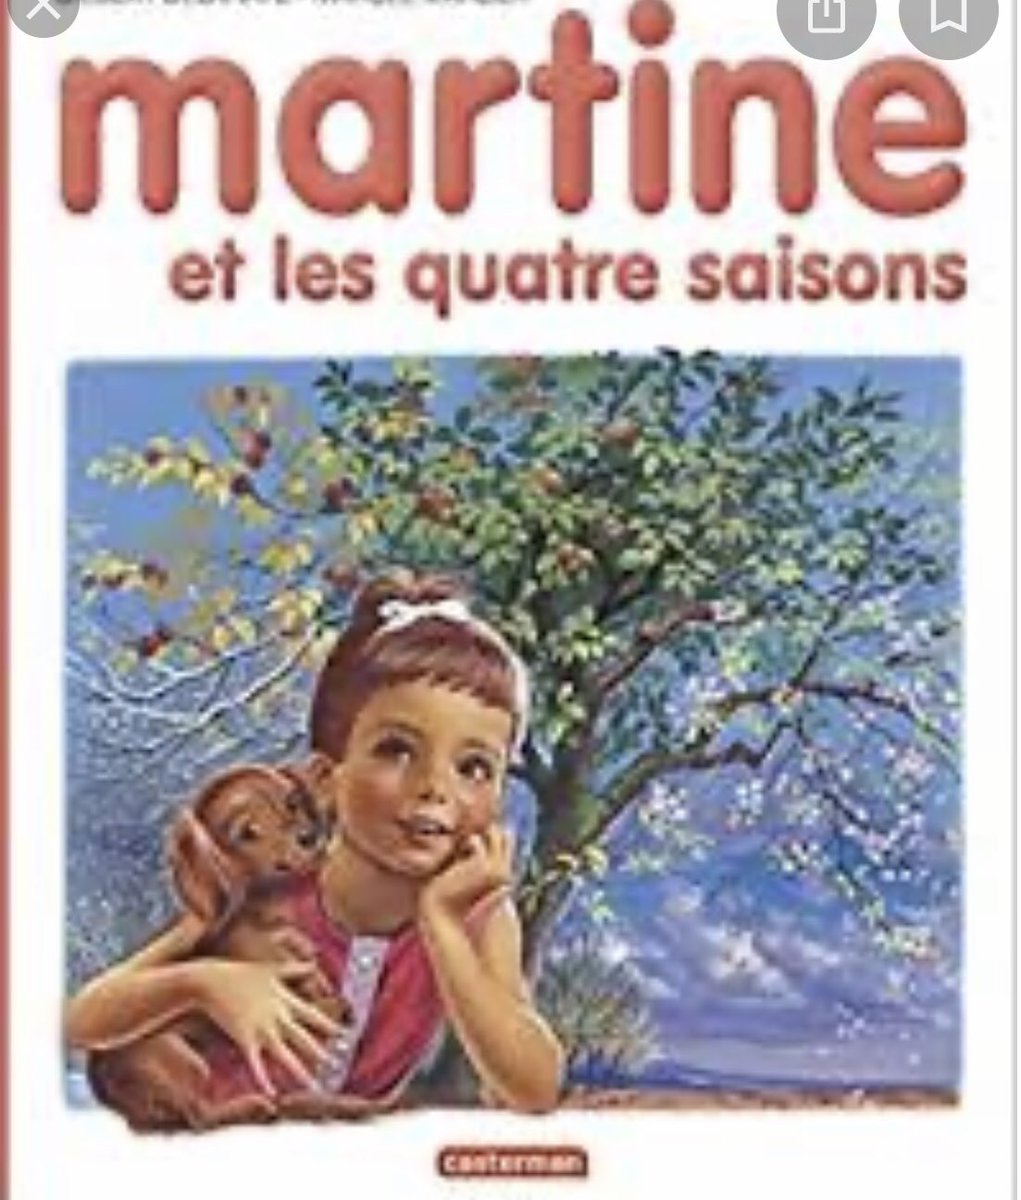 In reply to @BethFratesMD  This is my first childhood book! Martine was full of joy and happiness! What was yours? @MCoronelMD  @rayahsawaya  @DCharabaty  @HafizaKMD  @ChaabanMD  @GallaherCaren  @drmonalidesai  @alvin  #FirstNovel